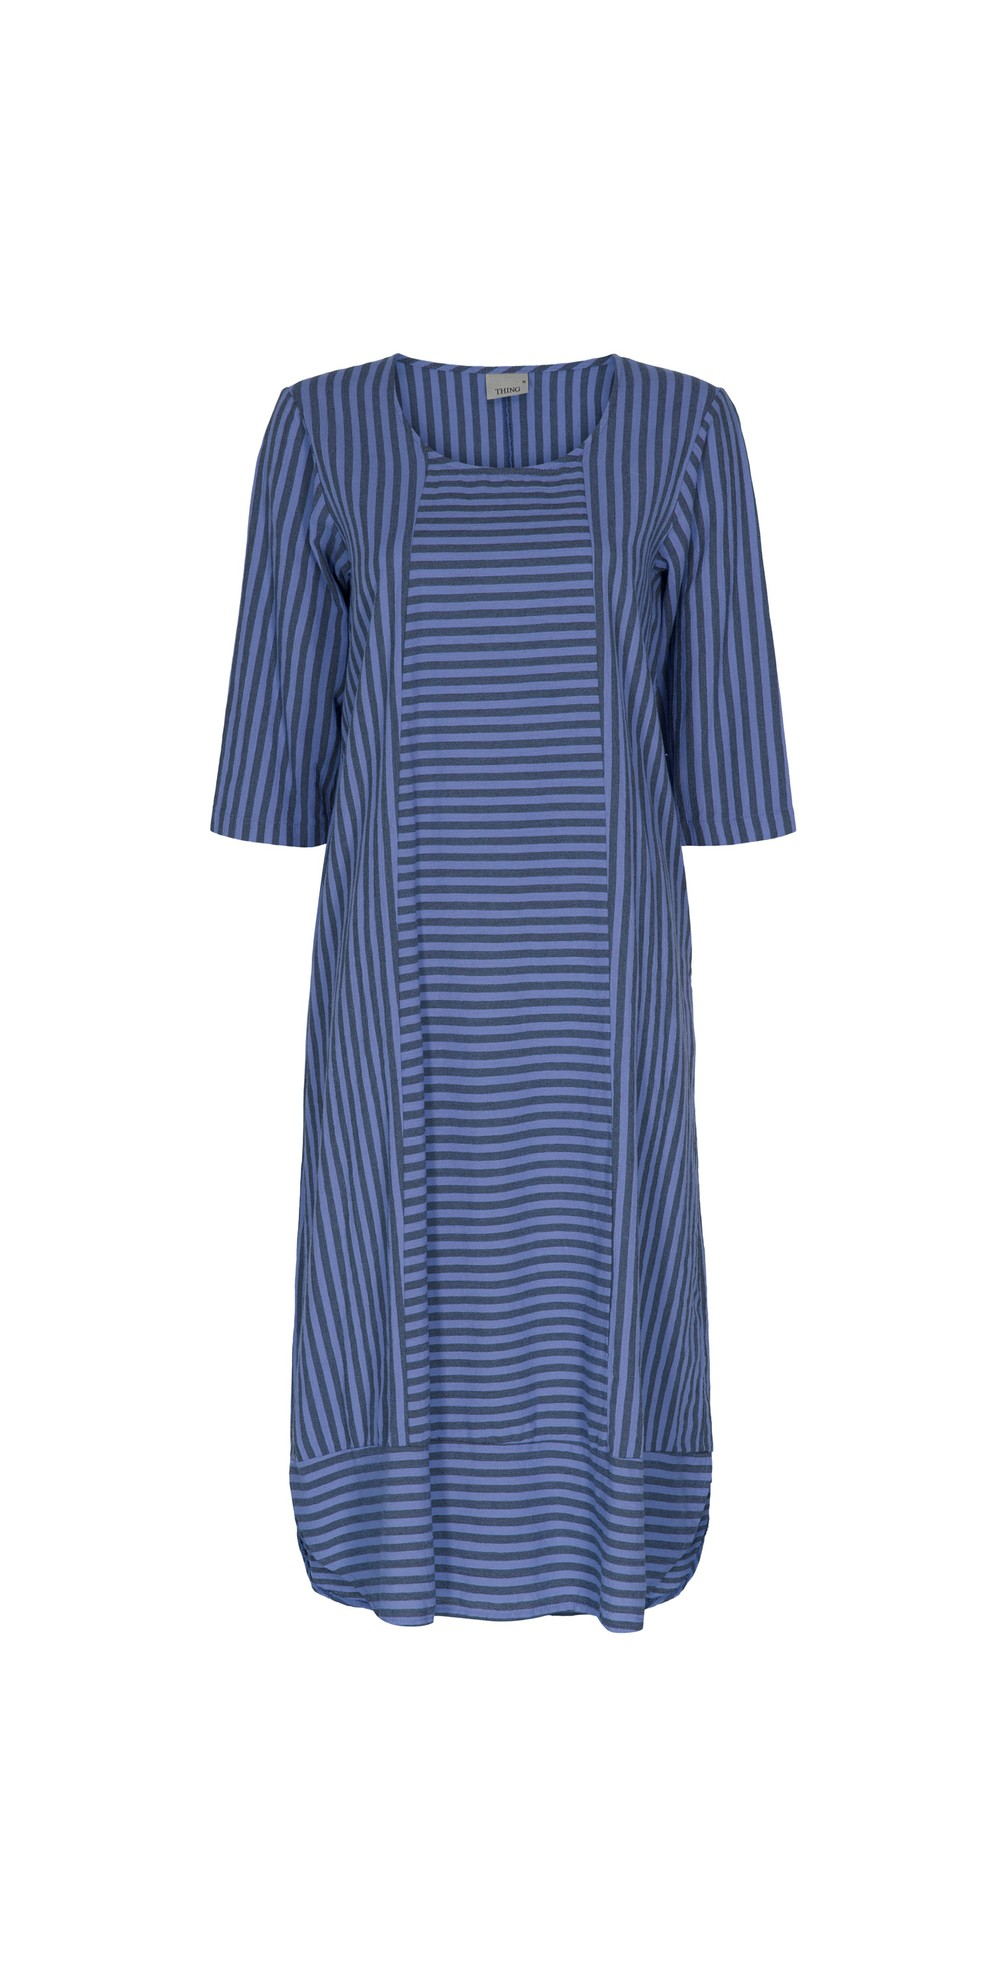 Tani Stripe Pannelled Dress main image